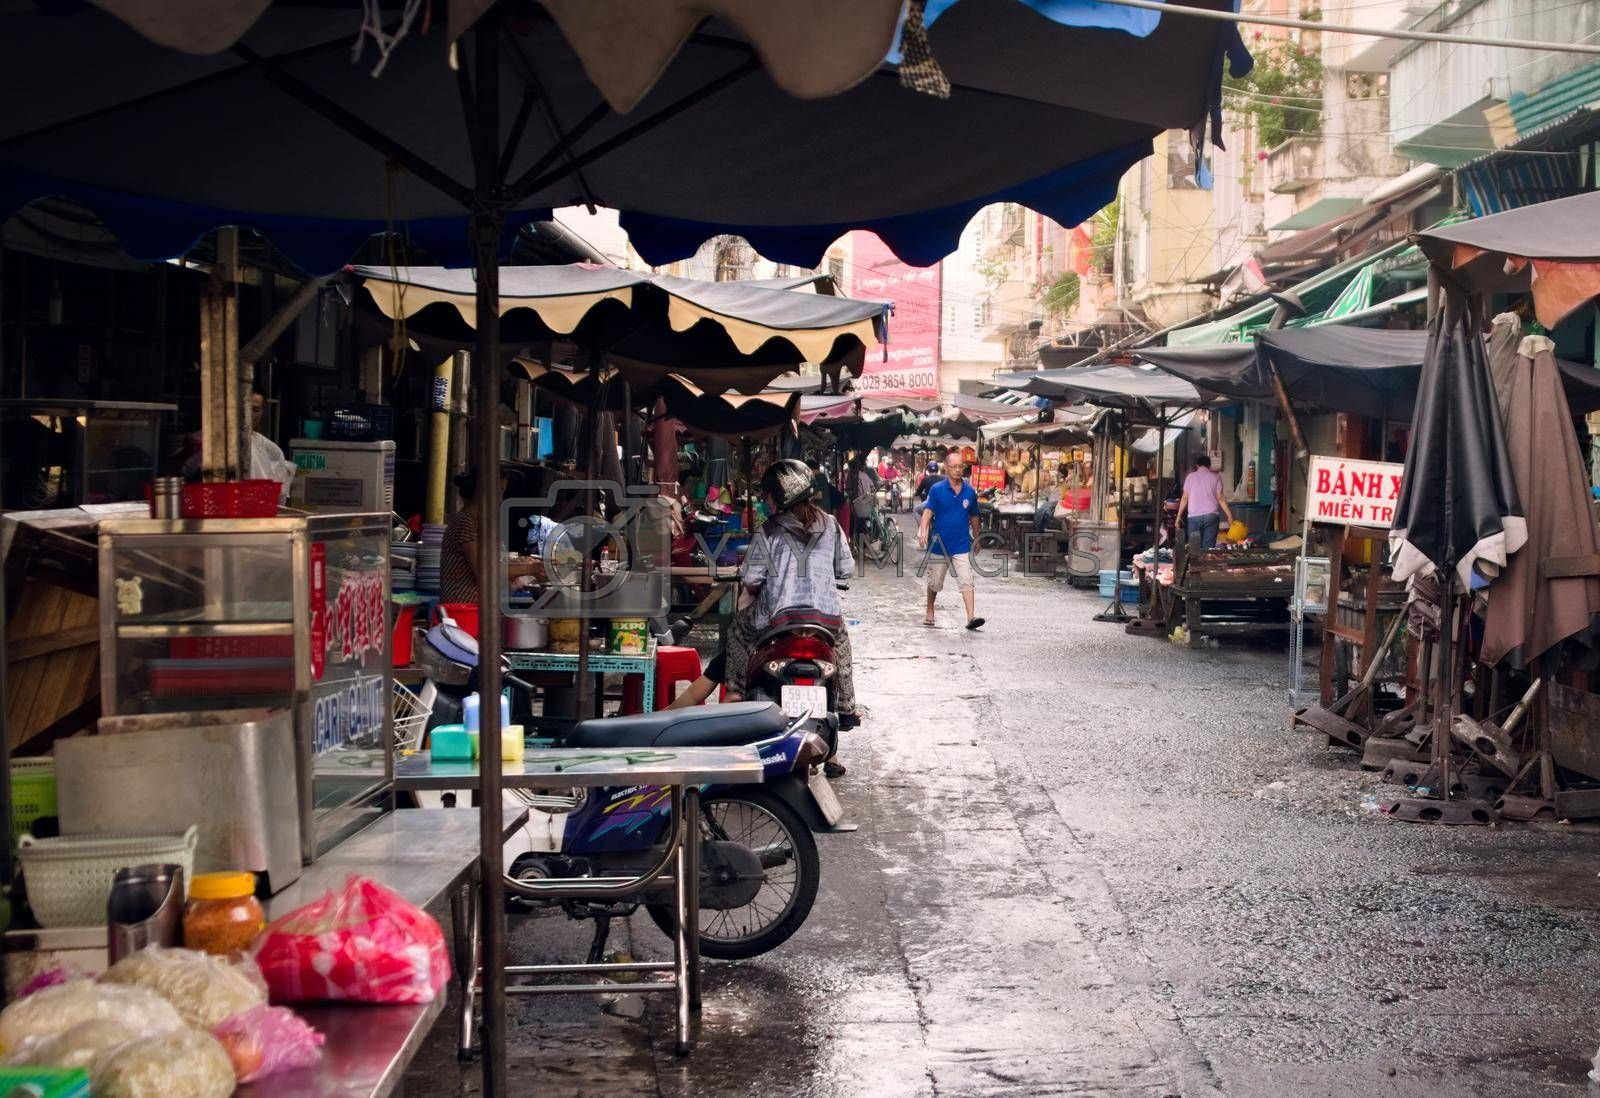 Royalty free image of 2019-11-13 / Ho Chi Minh CIty, Vietnam - A dirty street food market in a poor area of the city. by hernan_hyper